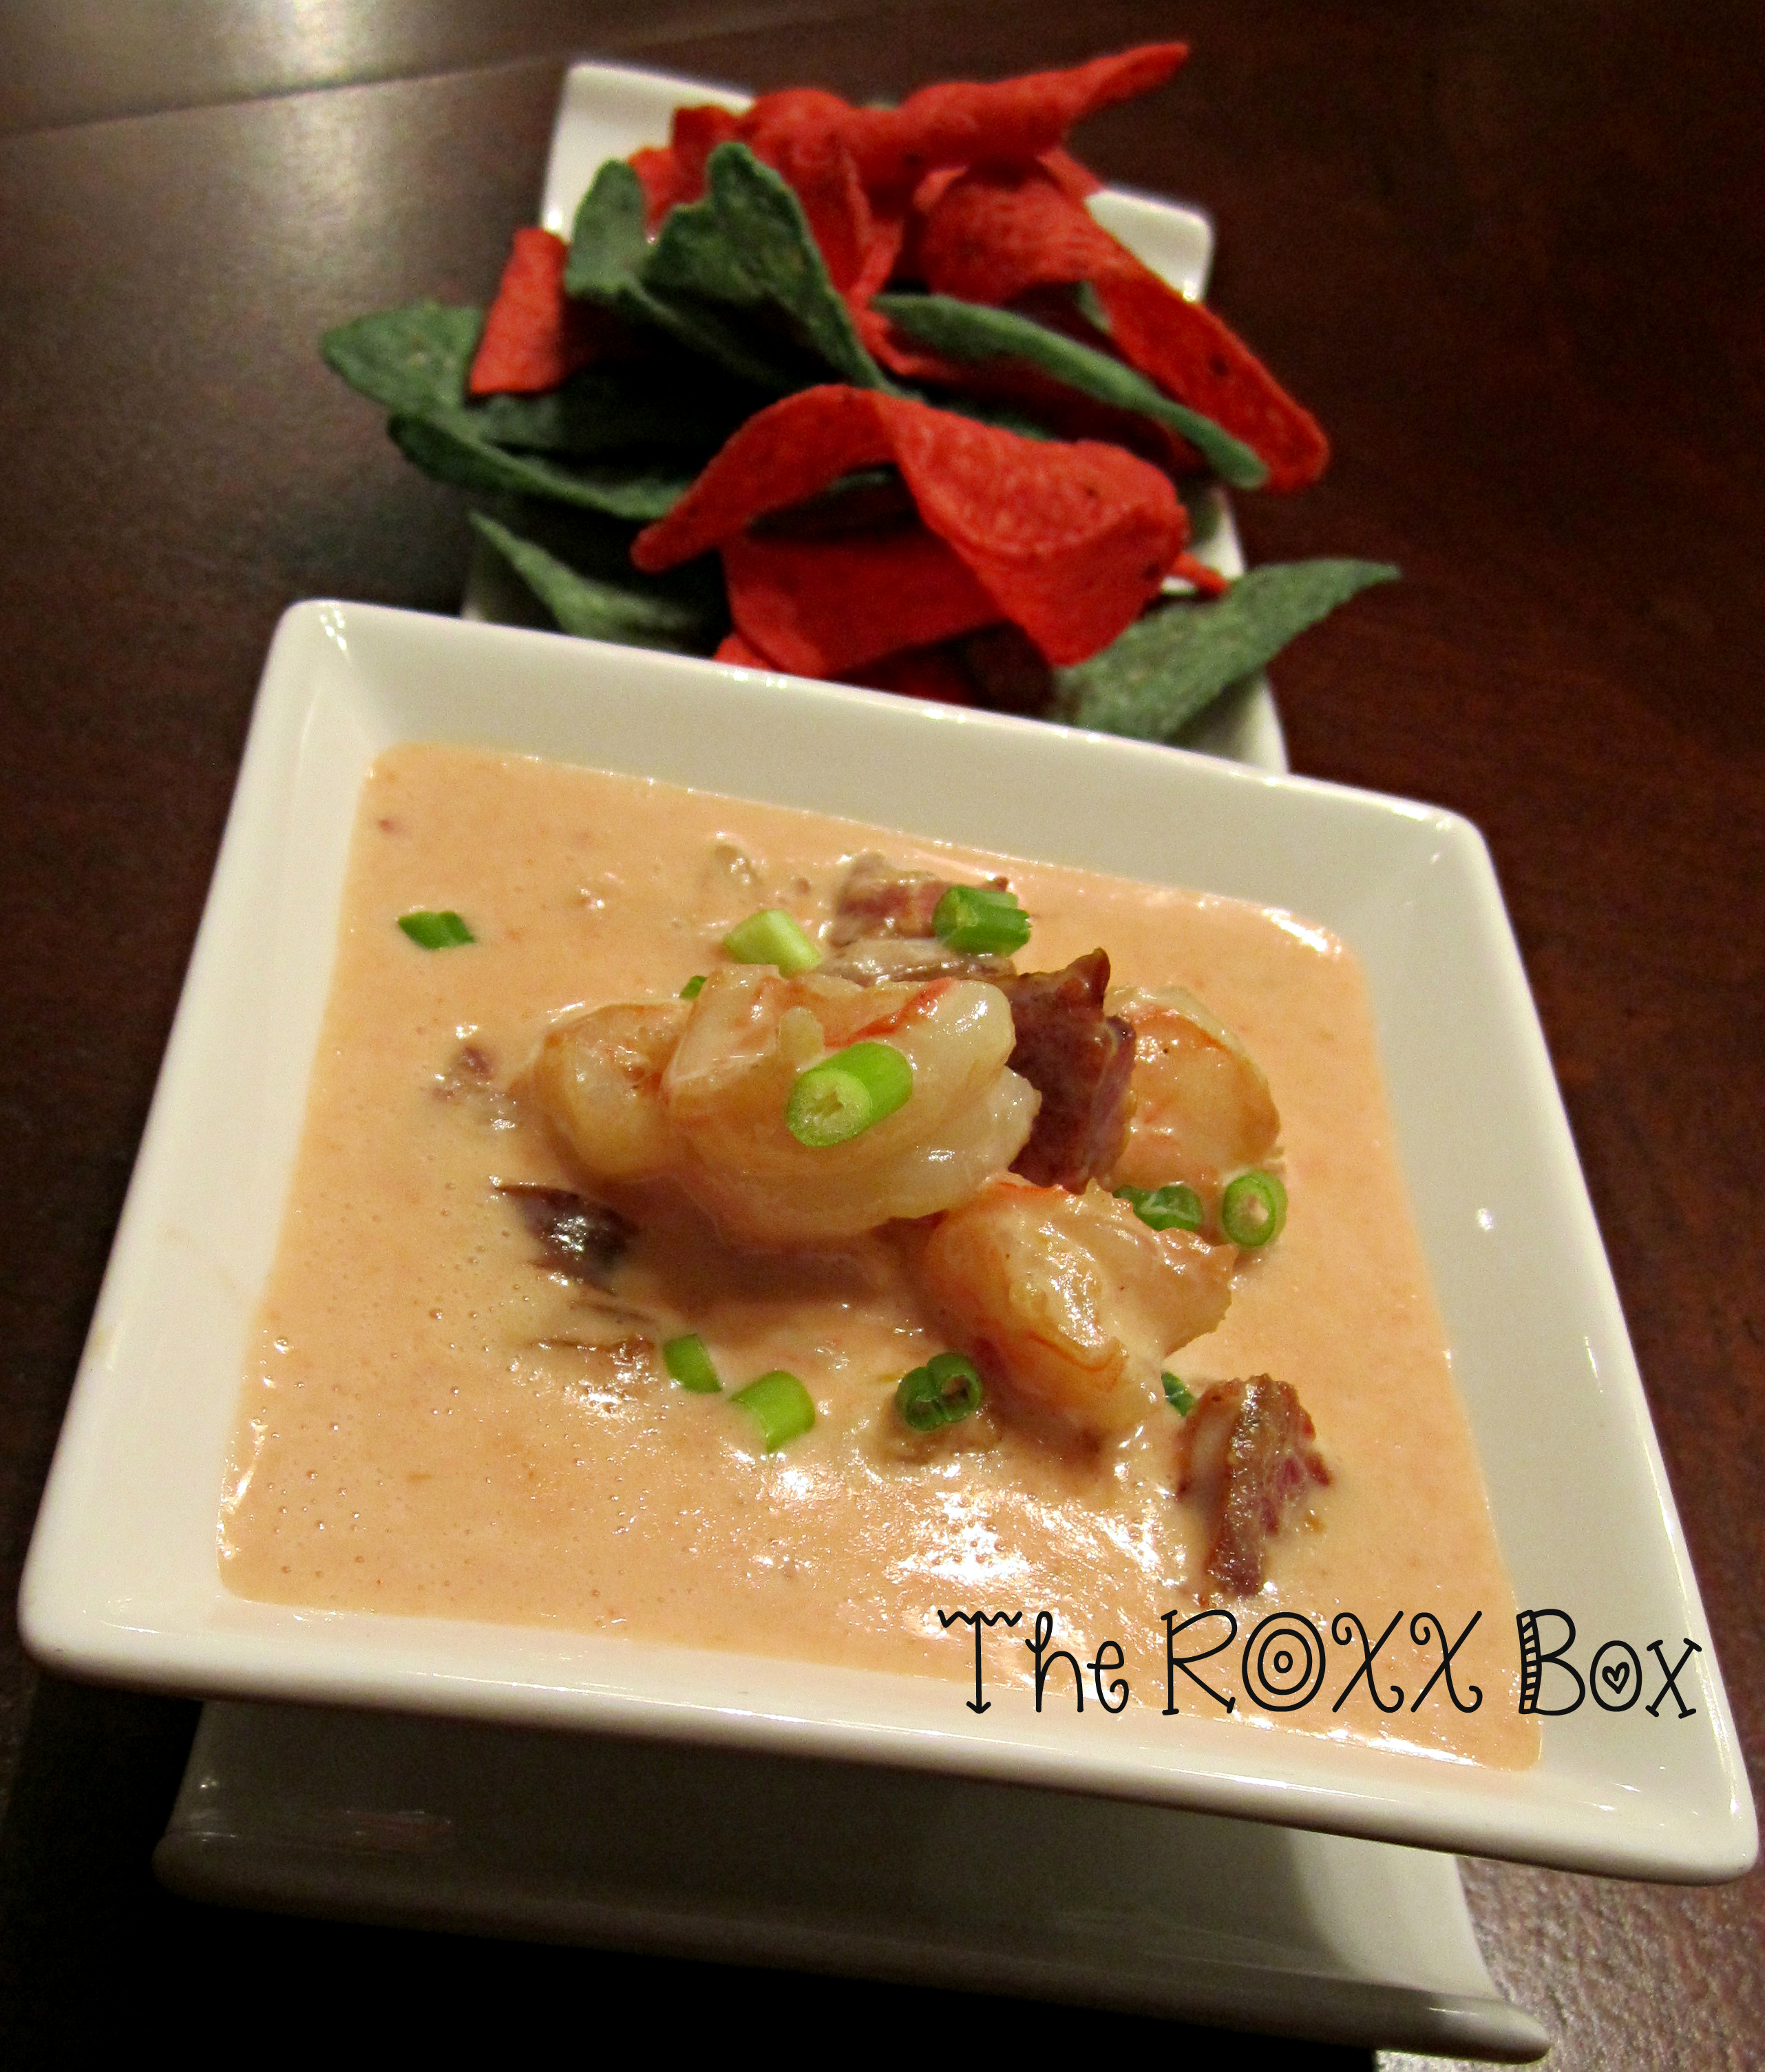 Roxanne's Shrimp & Andouille Sausage Queso Dip #SundaySupper